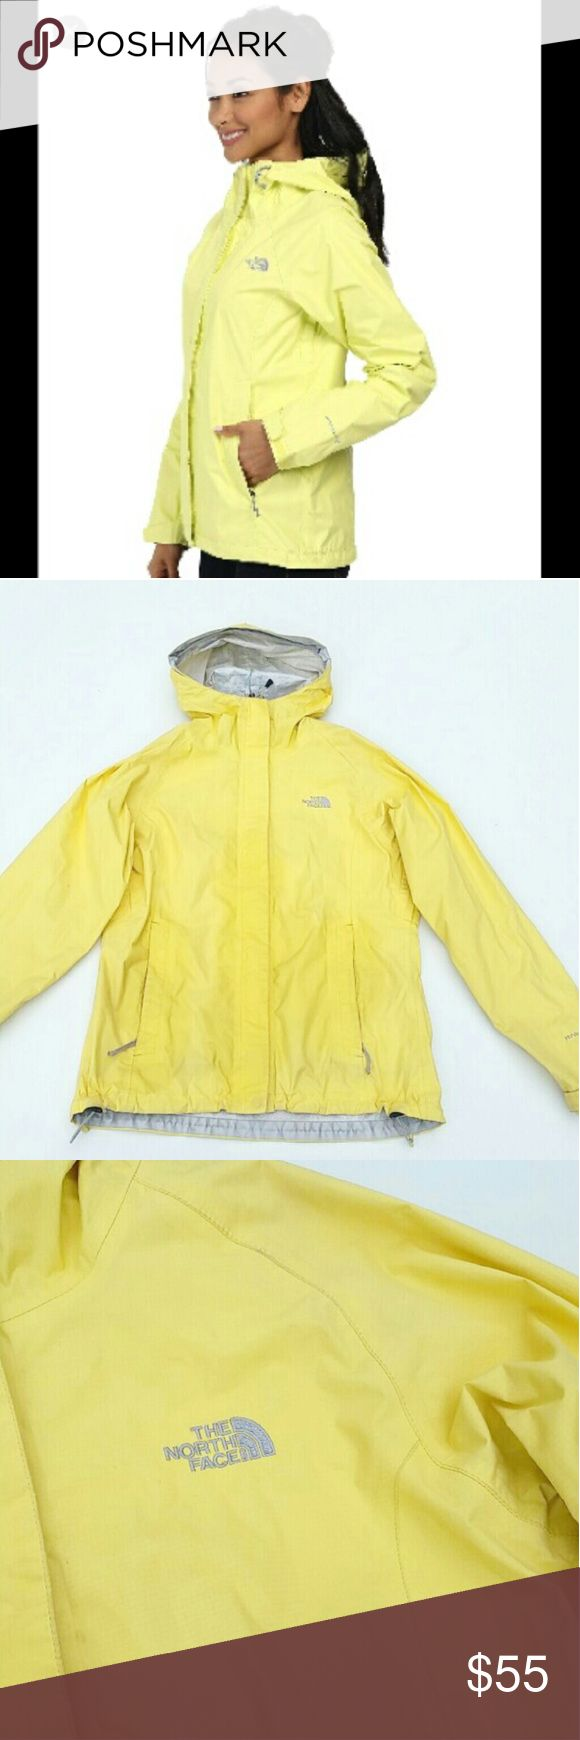 The North Face yellow windbreaker S The North Face yellow rain coat / windbreaker jacket. Size small. In great condition! :) no stains, fading, or rips anywhere. The darker yellow parts I just wiped it with a wet cloth from dust. Its not stains. The North Face Jackets & Coats